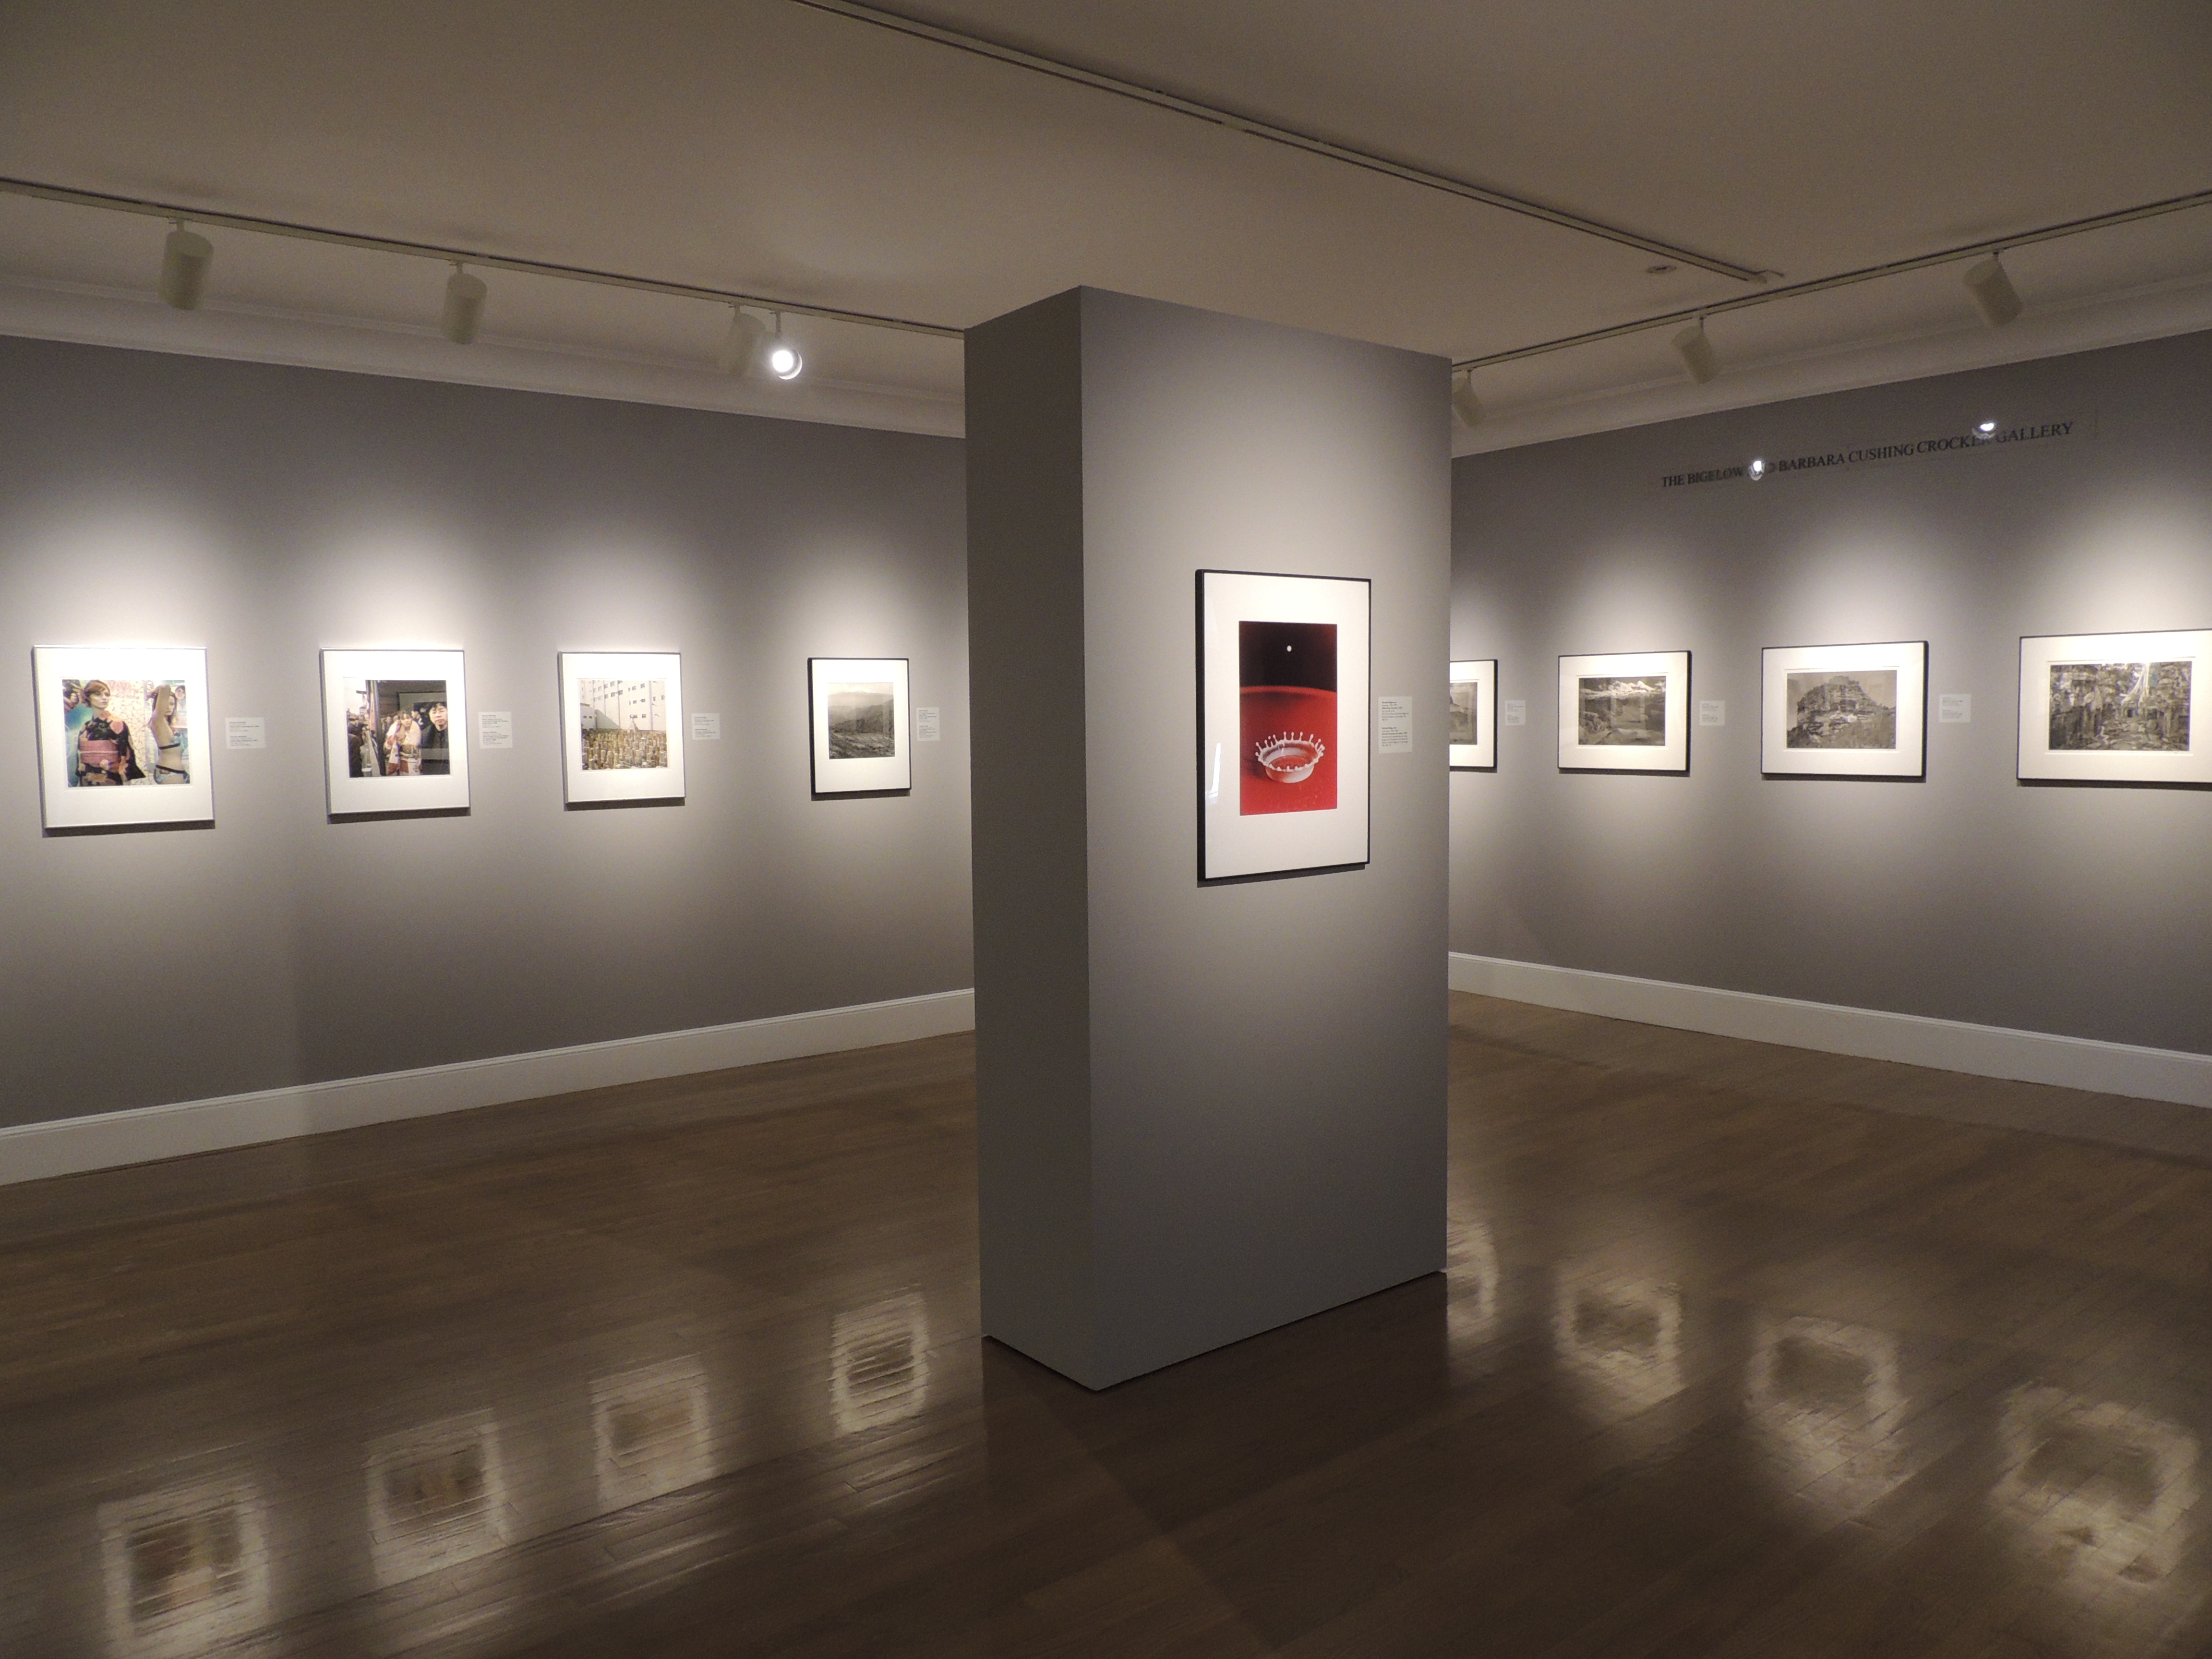 The photography gallery